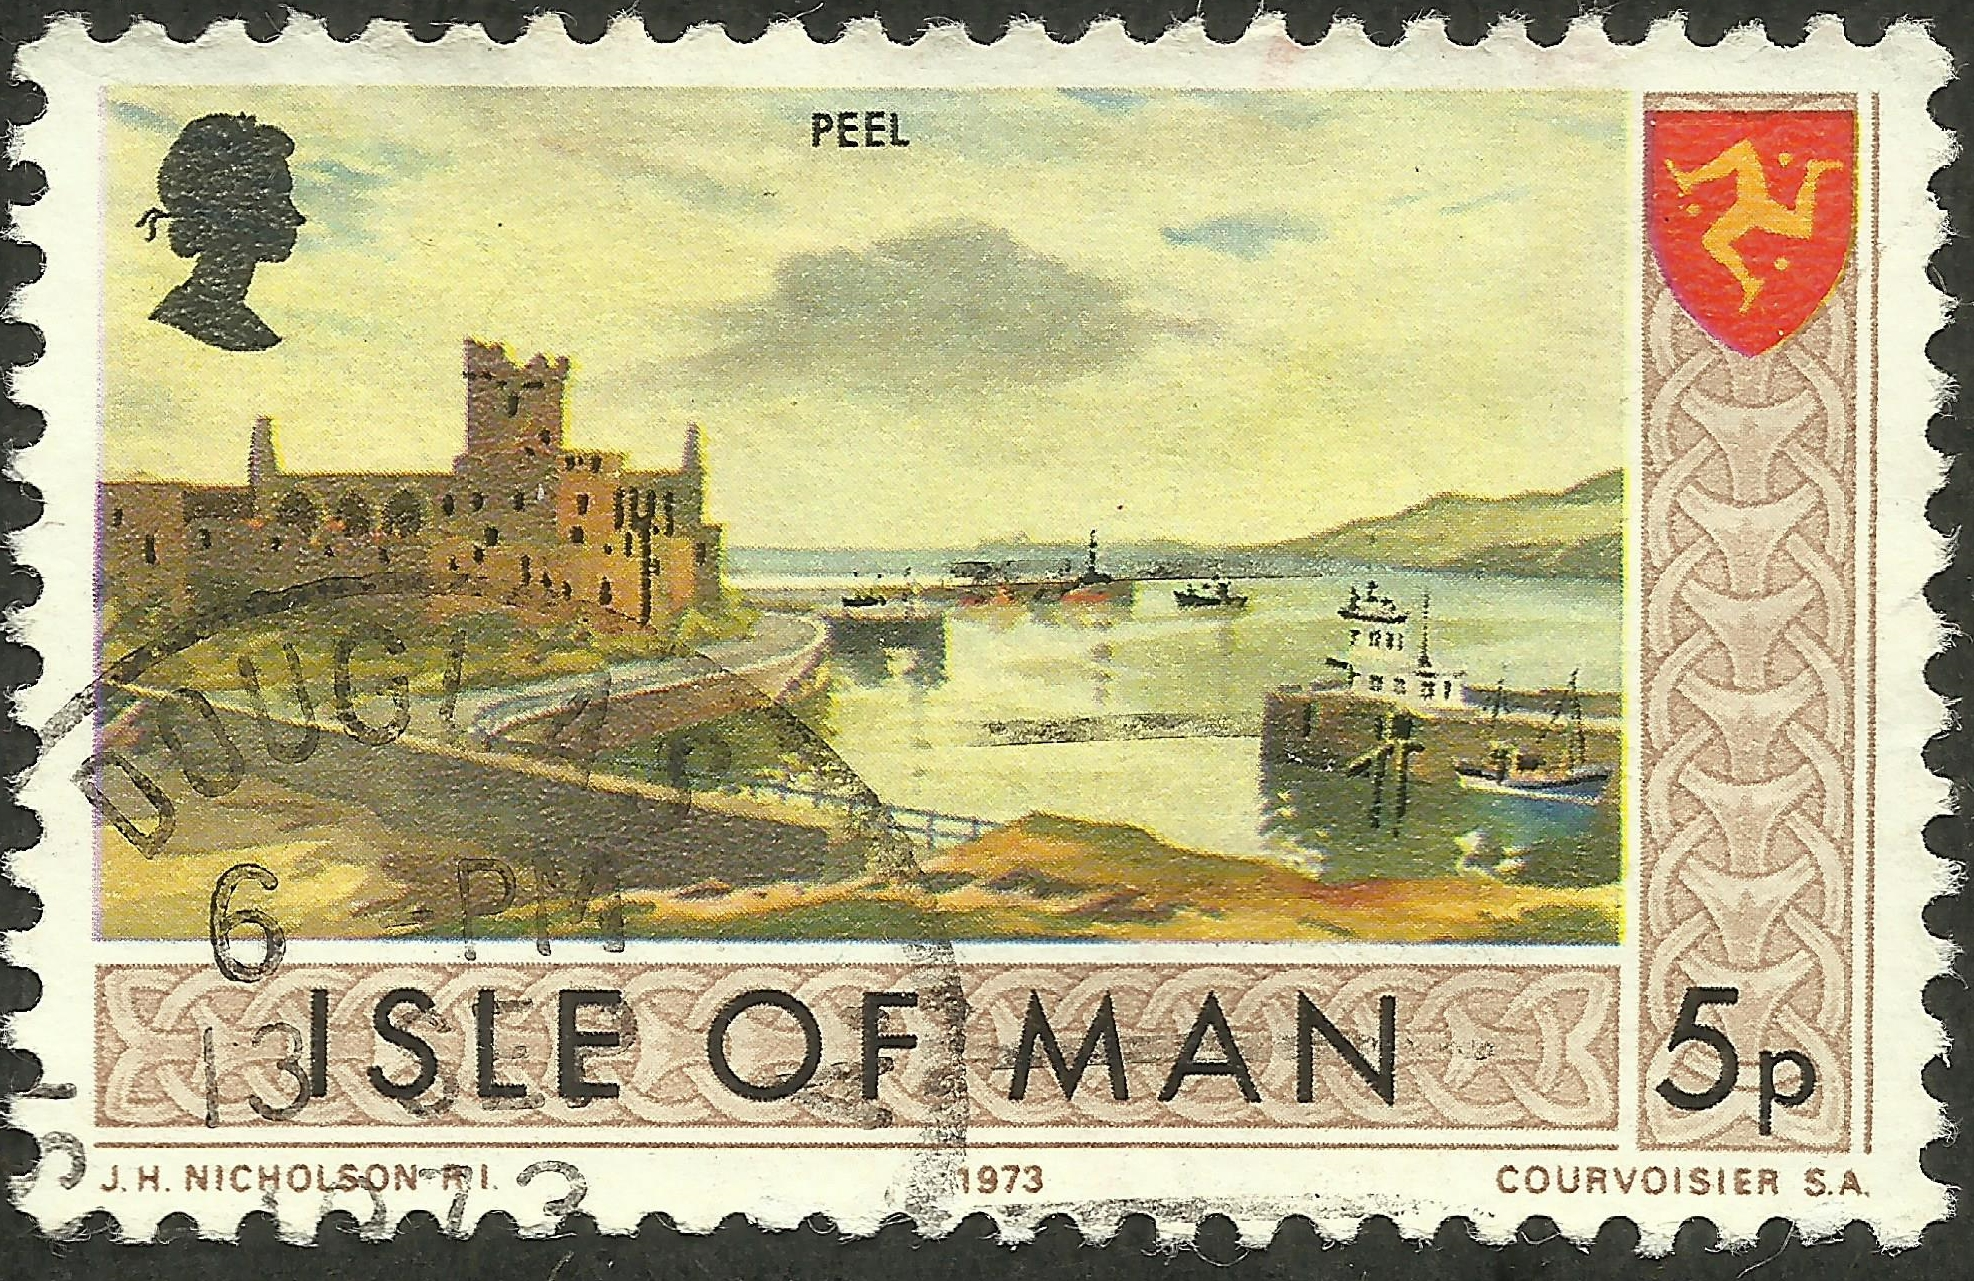 Isle of Man #20 (1973) postmarked 13 September 1973